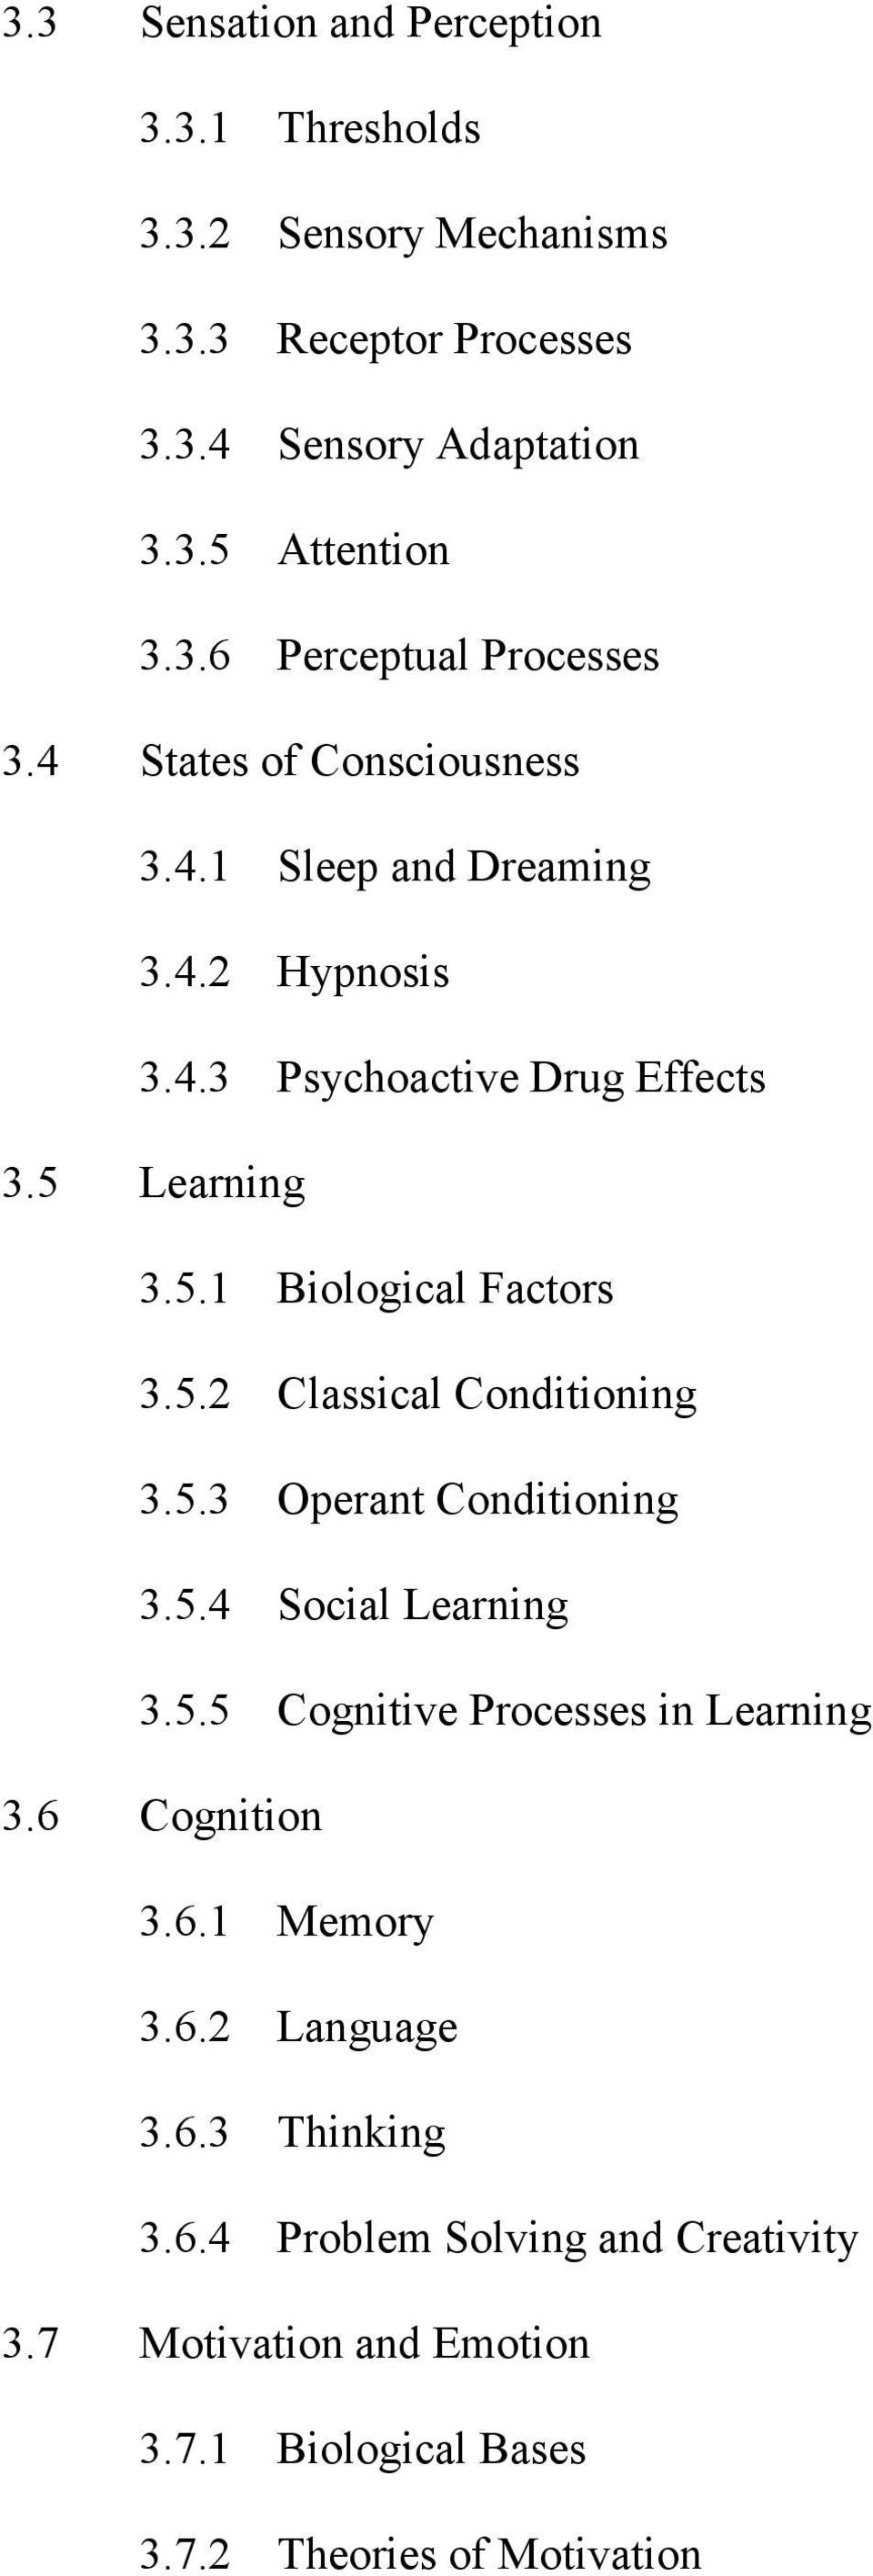 5.3 Operant Conditioning 3.5.4 Social Learning 3.5.5 Cognitive Processes in Learning 3.6 Cognition 3.6.1 Memory 3.6.2 Language 3.6.3 Thinking 3.6.4 Problem Solving and Creativity 3.